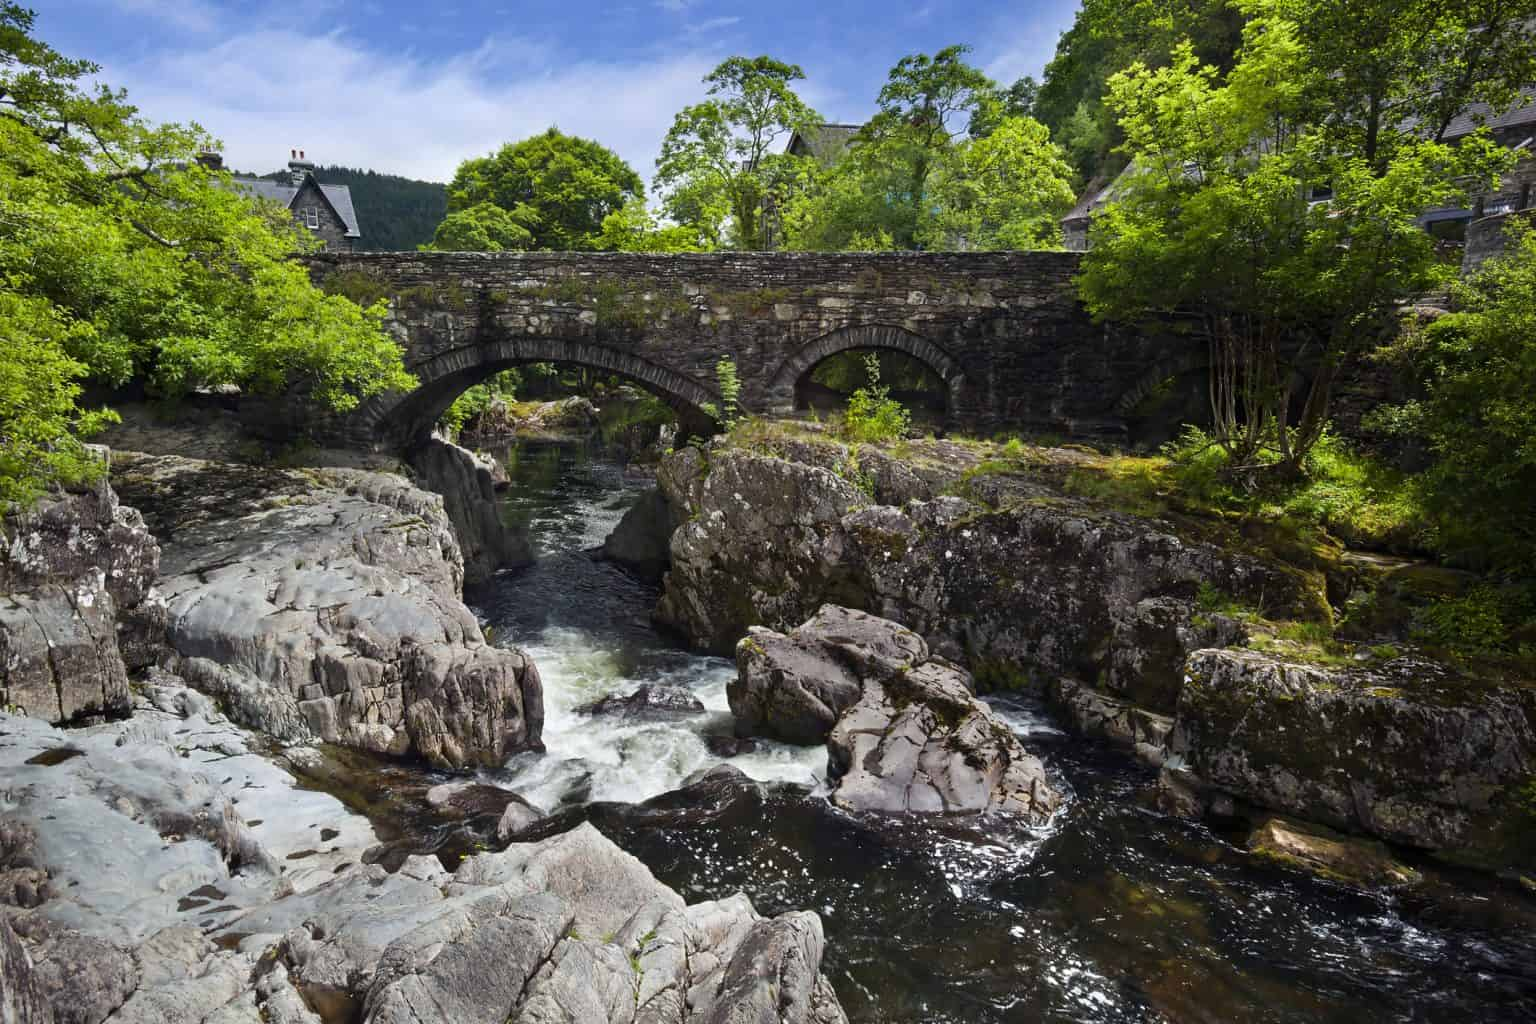 Pont-y-Pair Bridge and River Llugwy in Betws-y-Coed